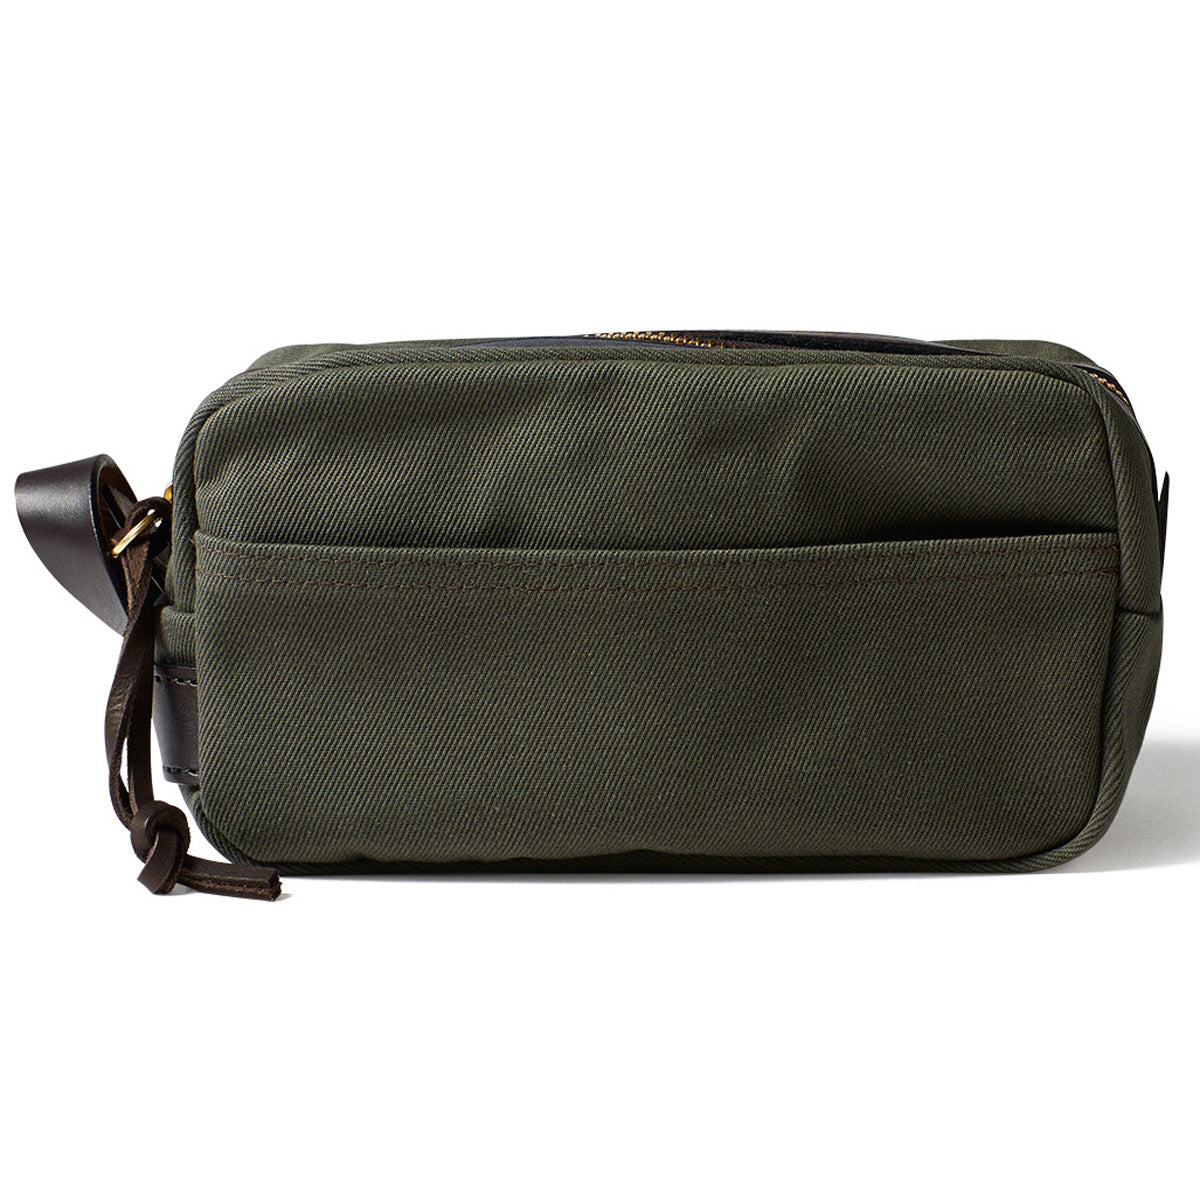 Filson Rugged Twill Travel Kit Otter Green